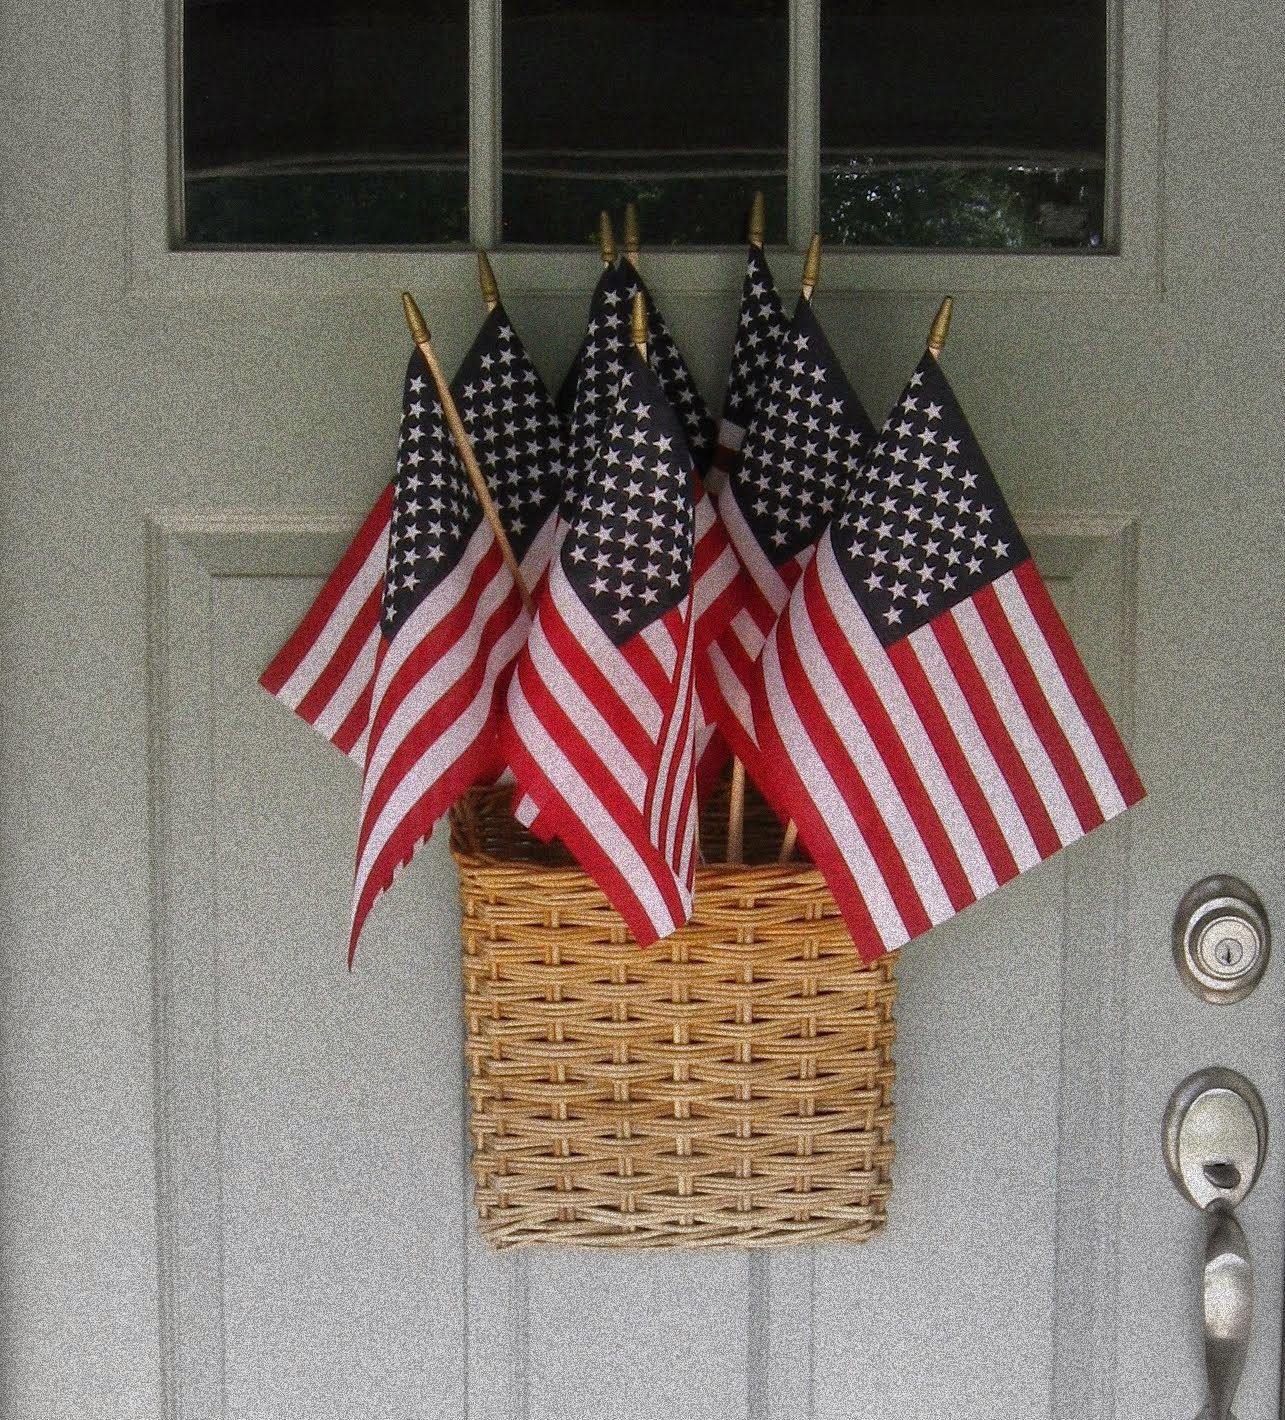 1561548147 909 cool 4th of july wreath ideas that would look perfect on your front door - Cool 4th of July Wreath Ideas That Would Look Perfect On Your Front Door